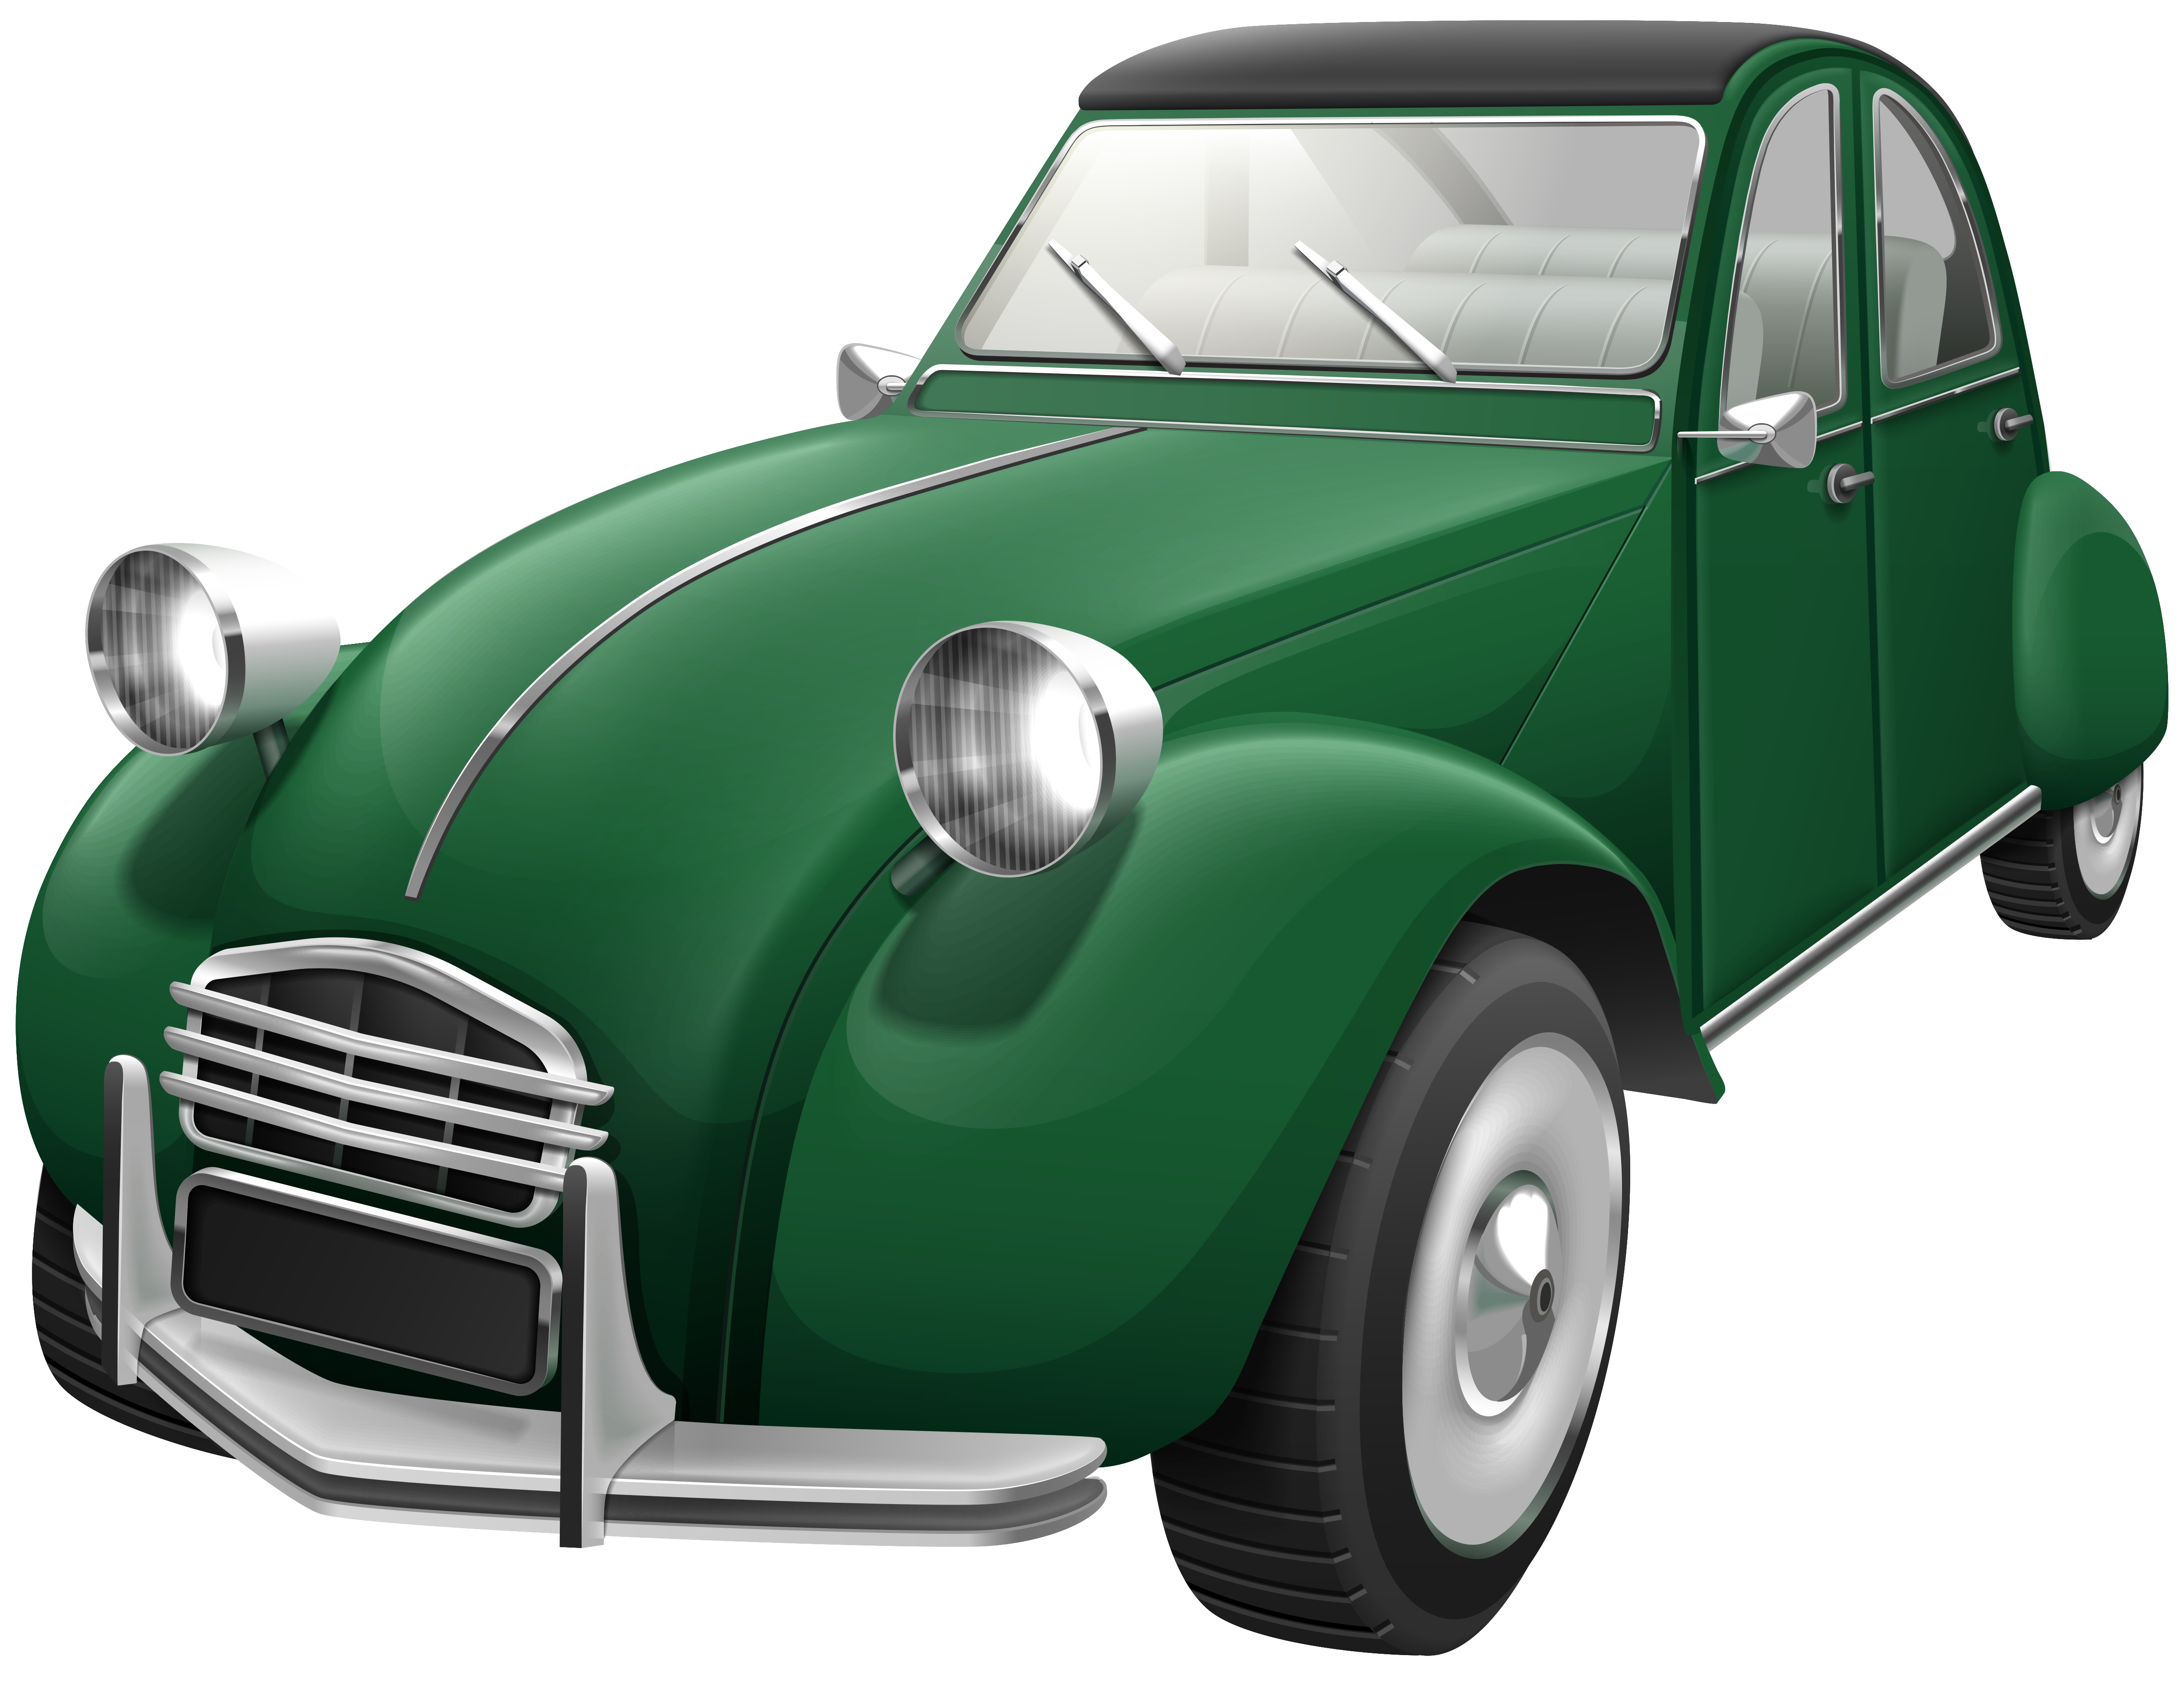 Retro clipart fishing. Green car png clip